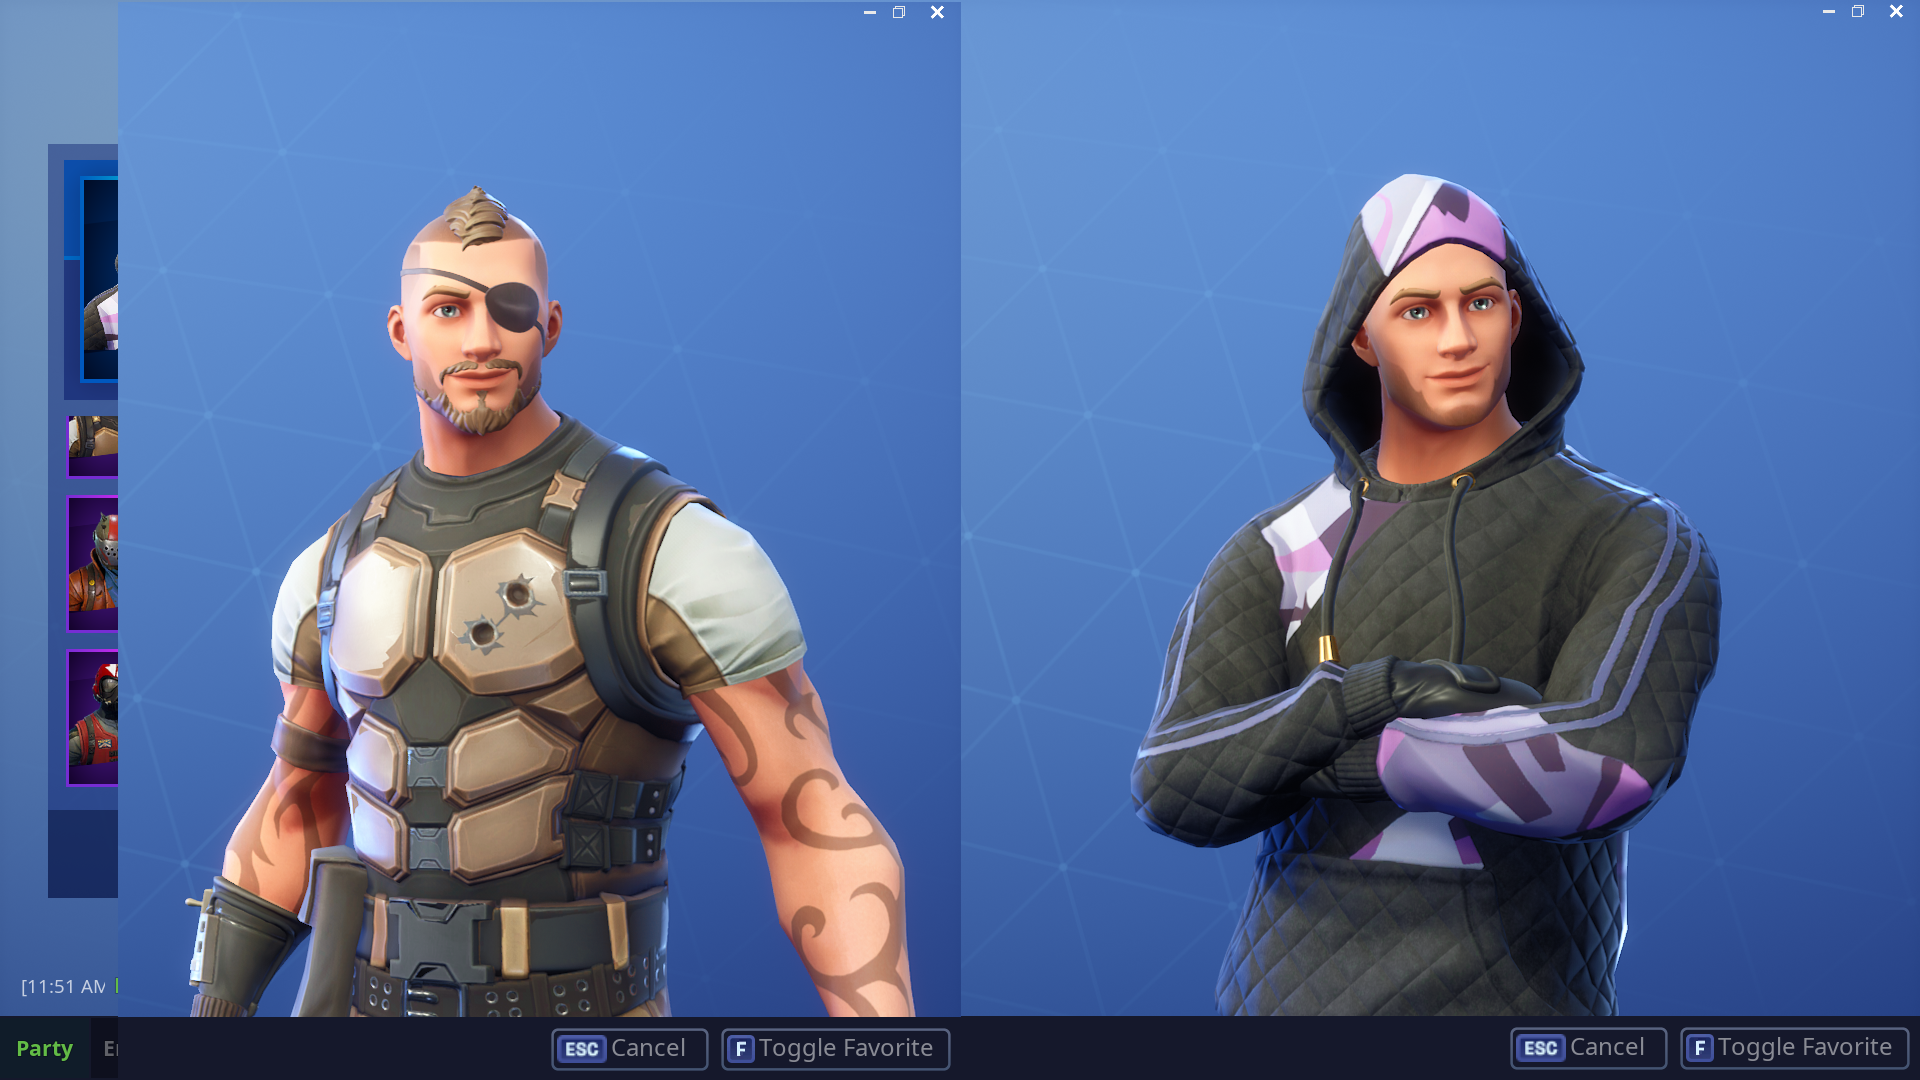 In todays update Monikers beard got undocumented shave FortNiteBR 1920x1080